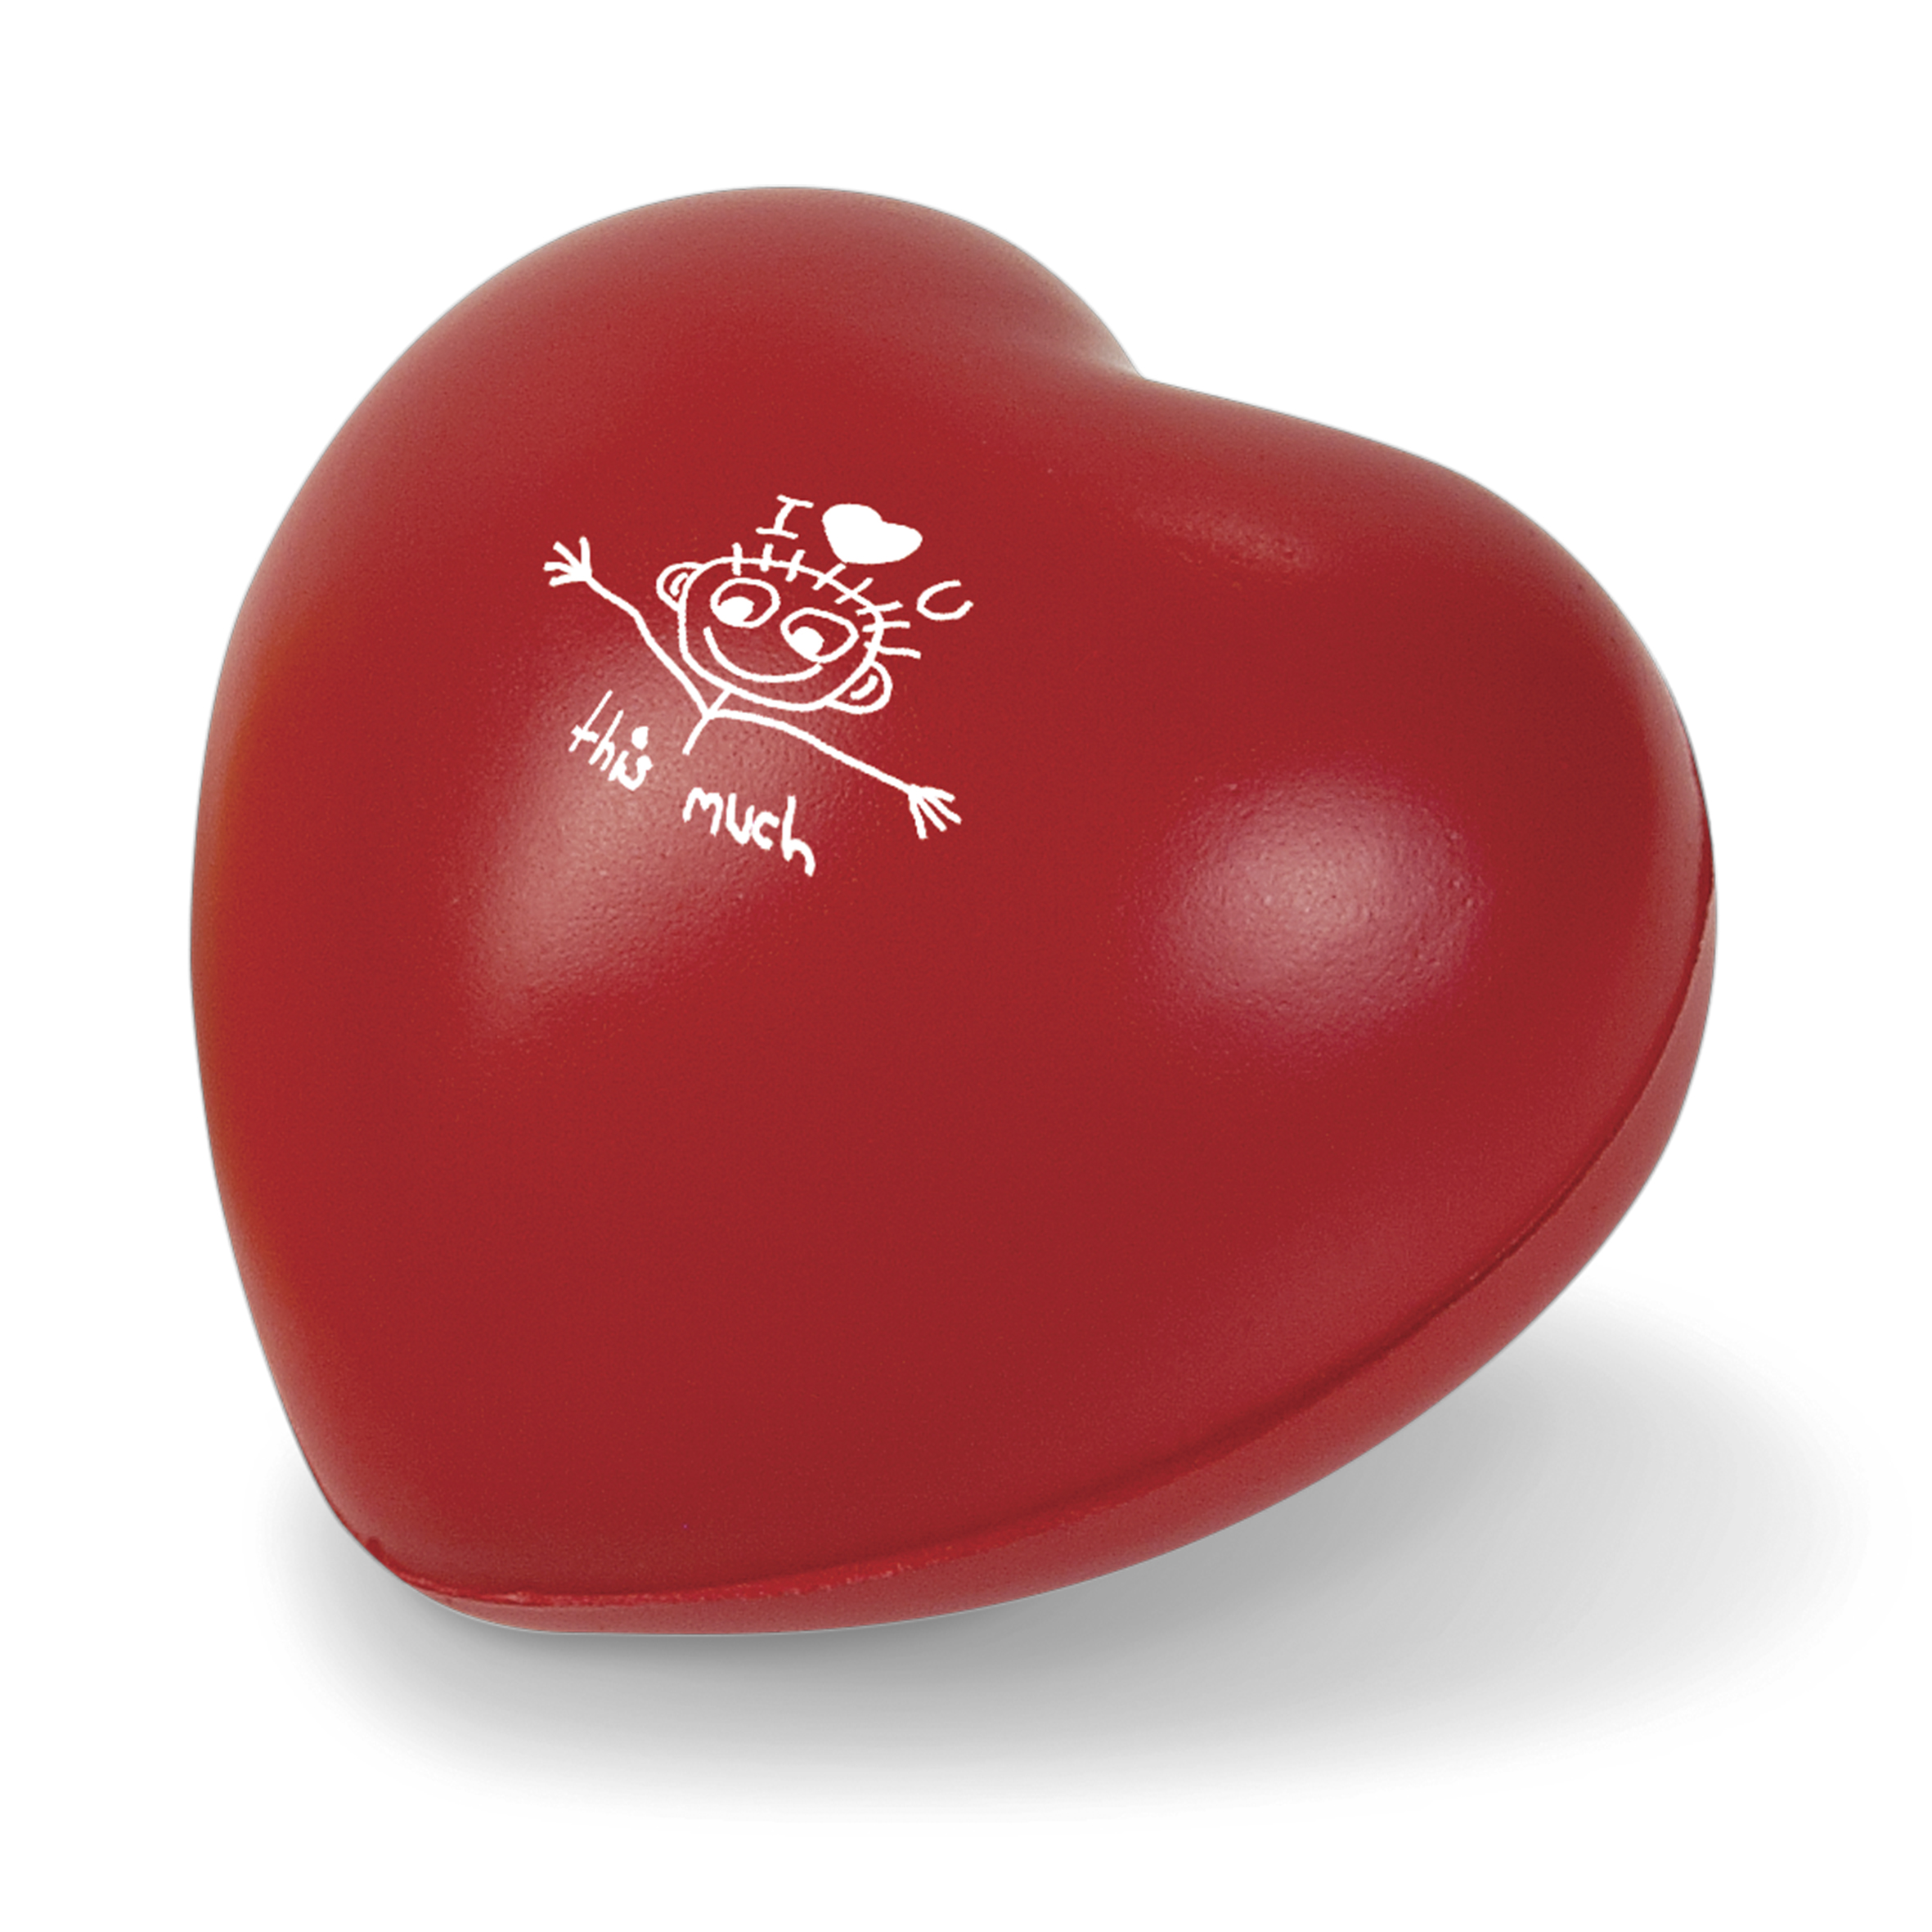 Product: Feel-The-Love Stress Buster